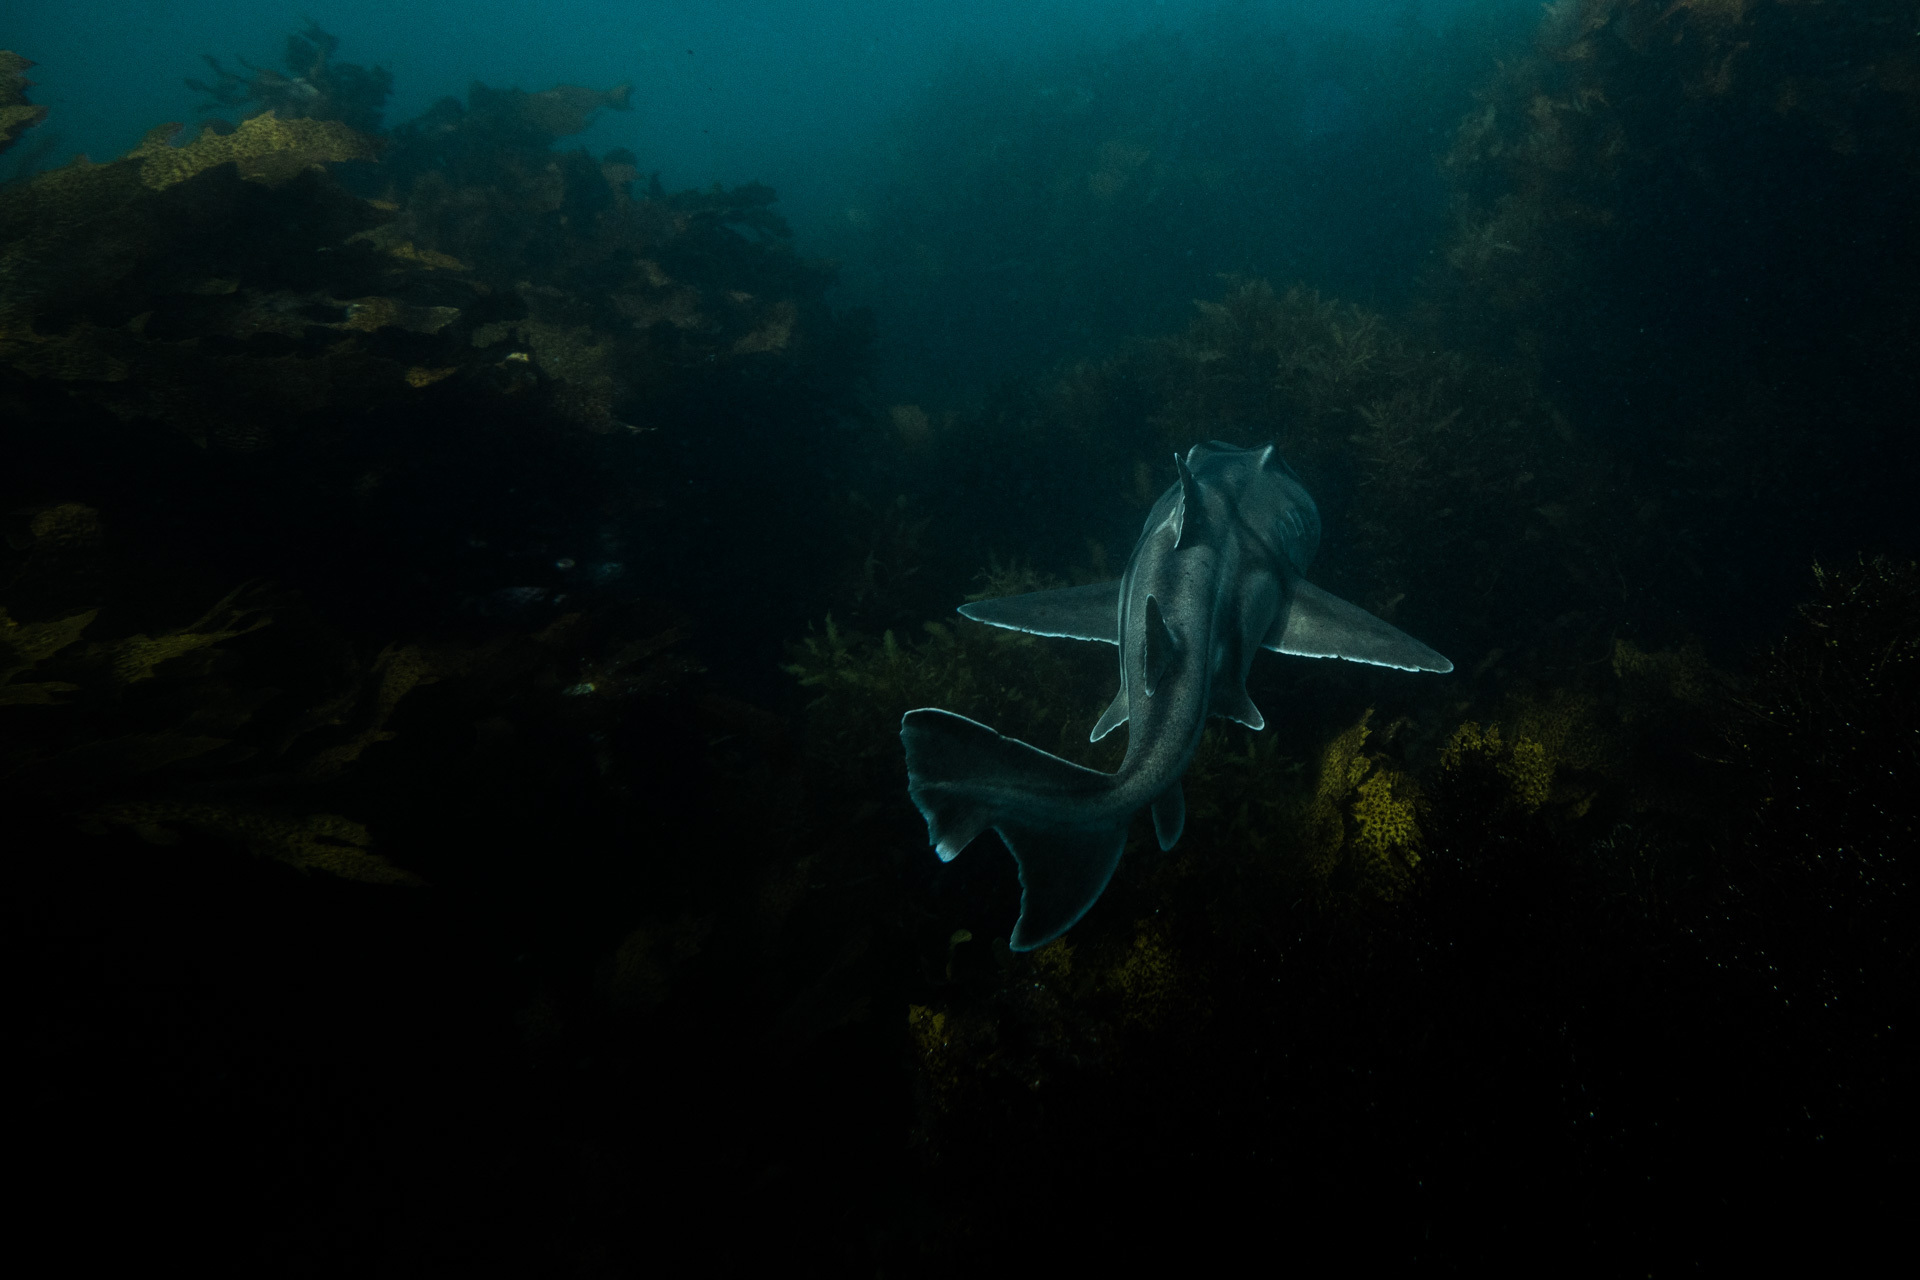 Meet The Underwater Residents of Sydney's Cabbage Tree Bay Aquatic Reserve – Photo Essay